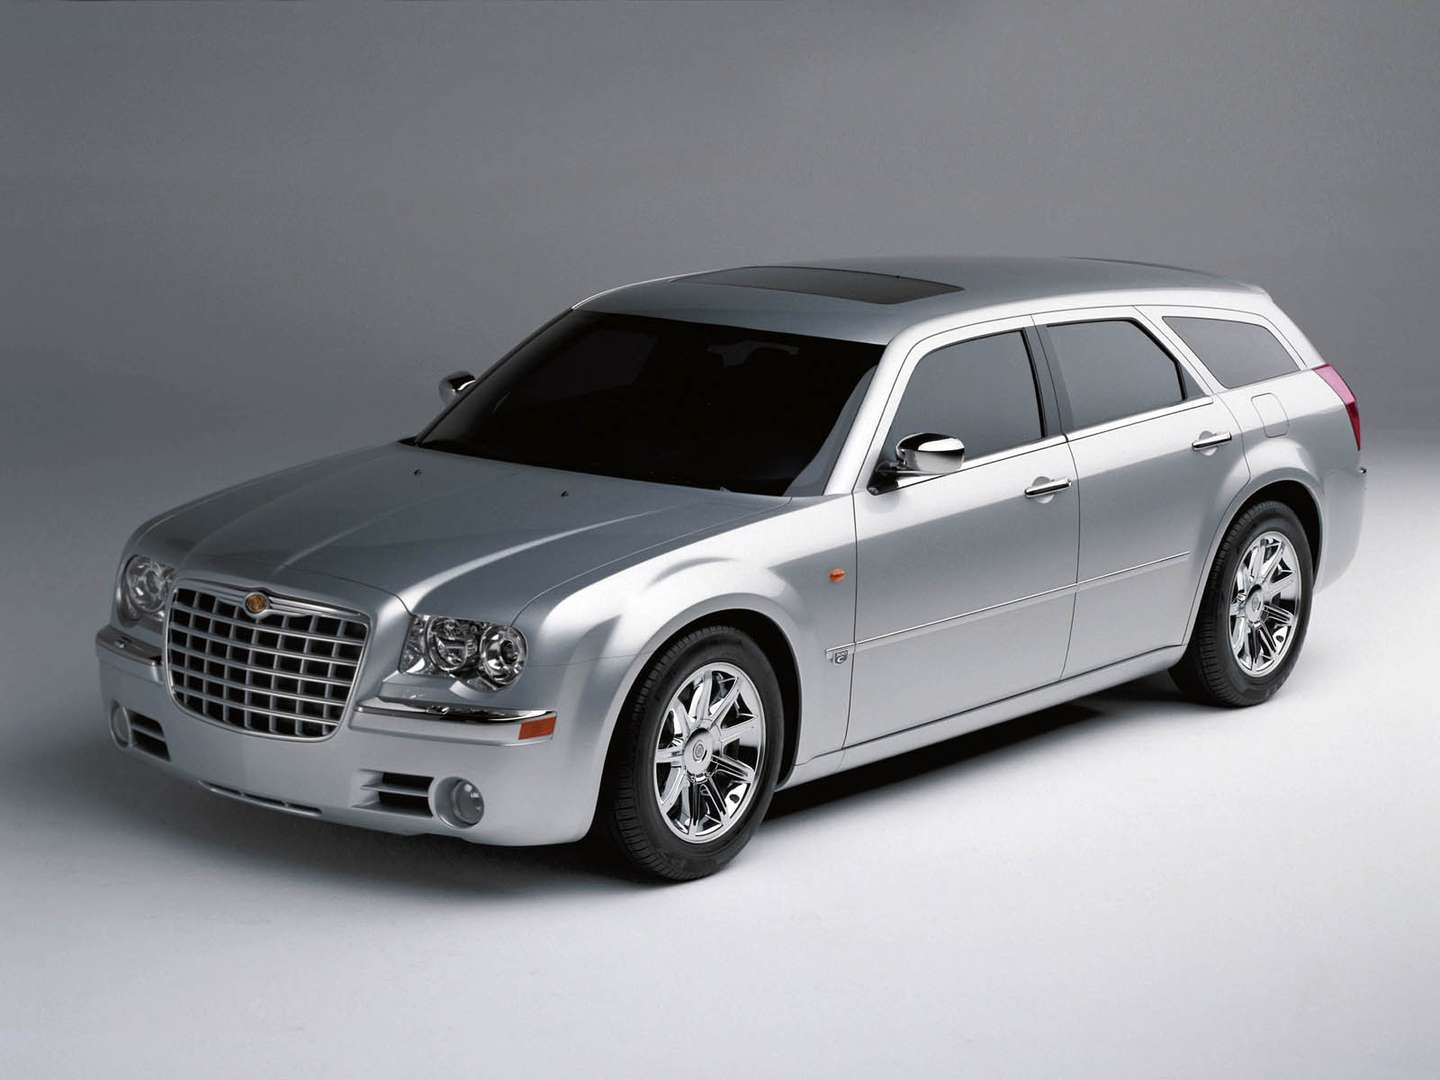 Chrysler 300C Touring #7940939